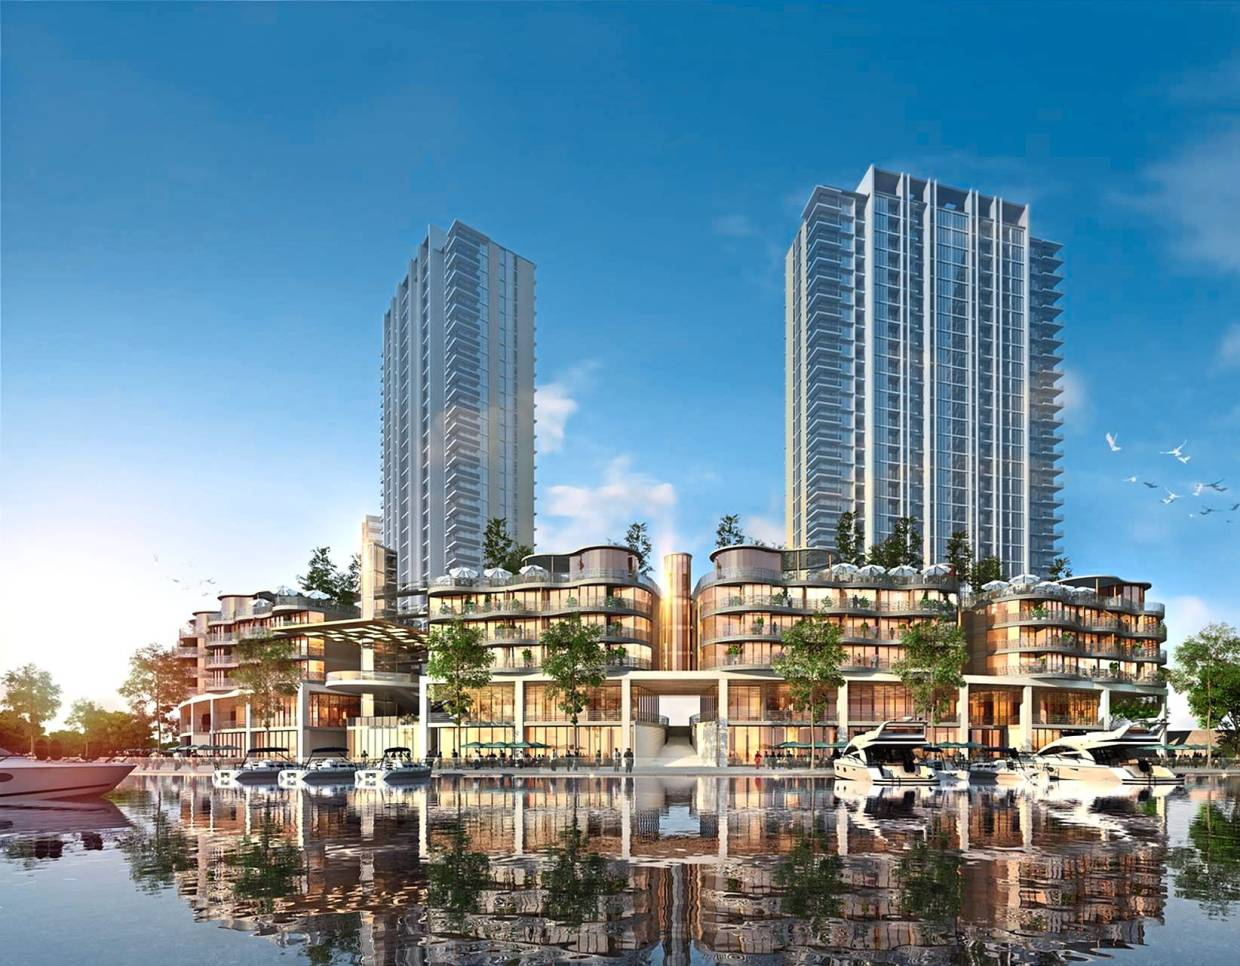 An artist's impression of the Terra project, which is Putrajaya's first premier lakeside lifestyle mixed development project. — Photos: RAJA FAISAL HISHAN/The Star and courtesy of Putrajaya Holdings and Putrajaya Corporation